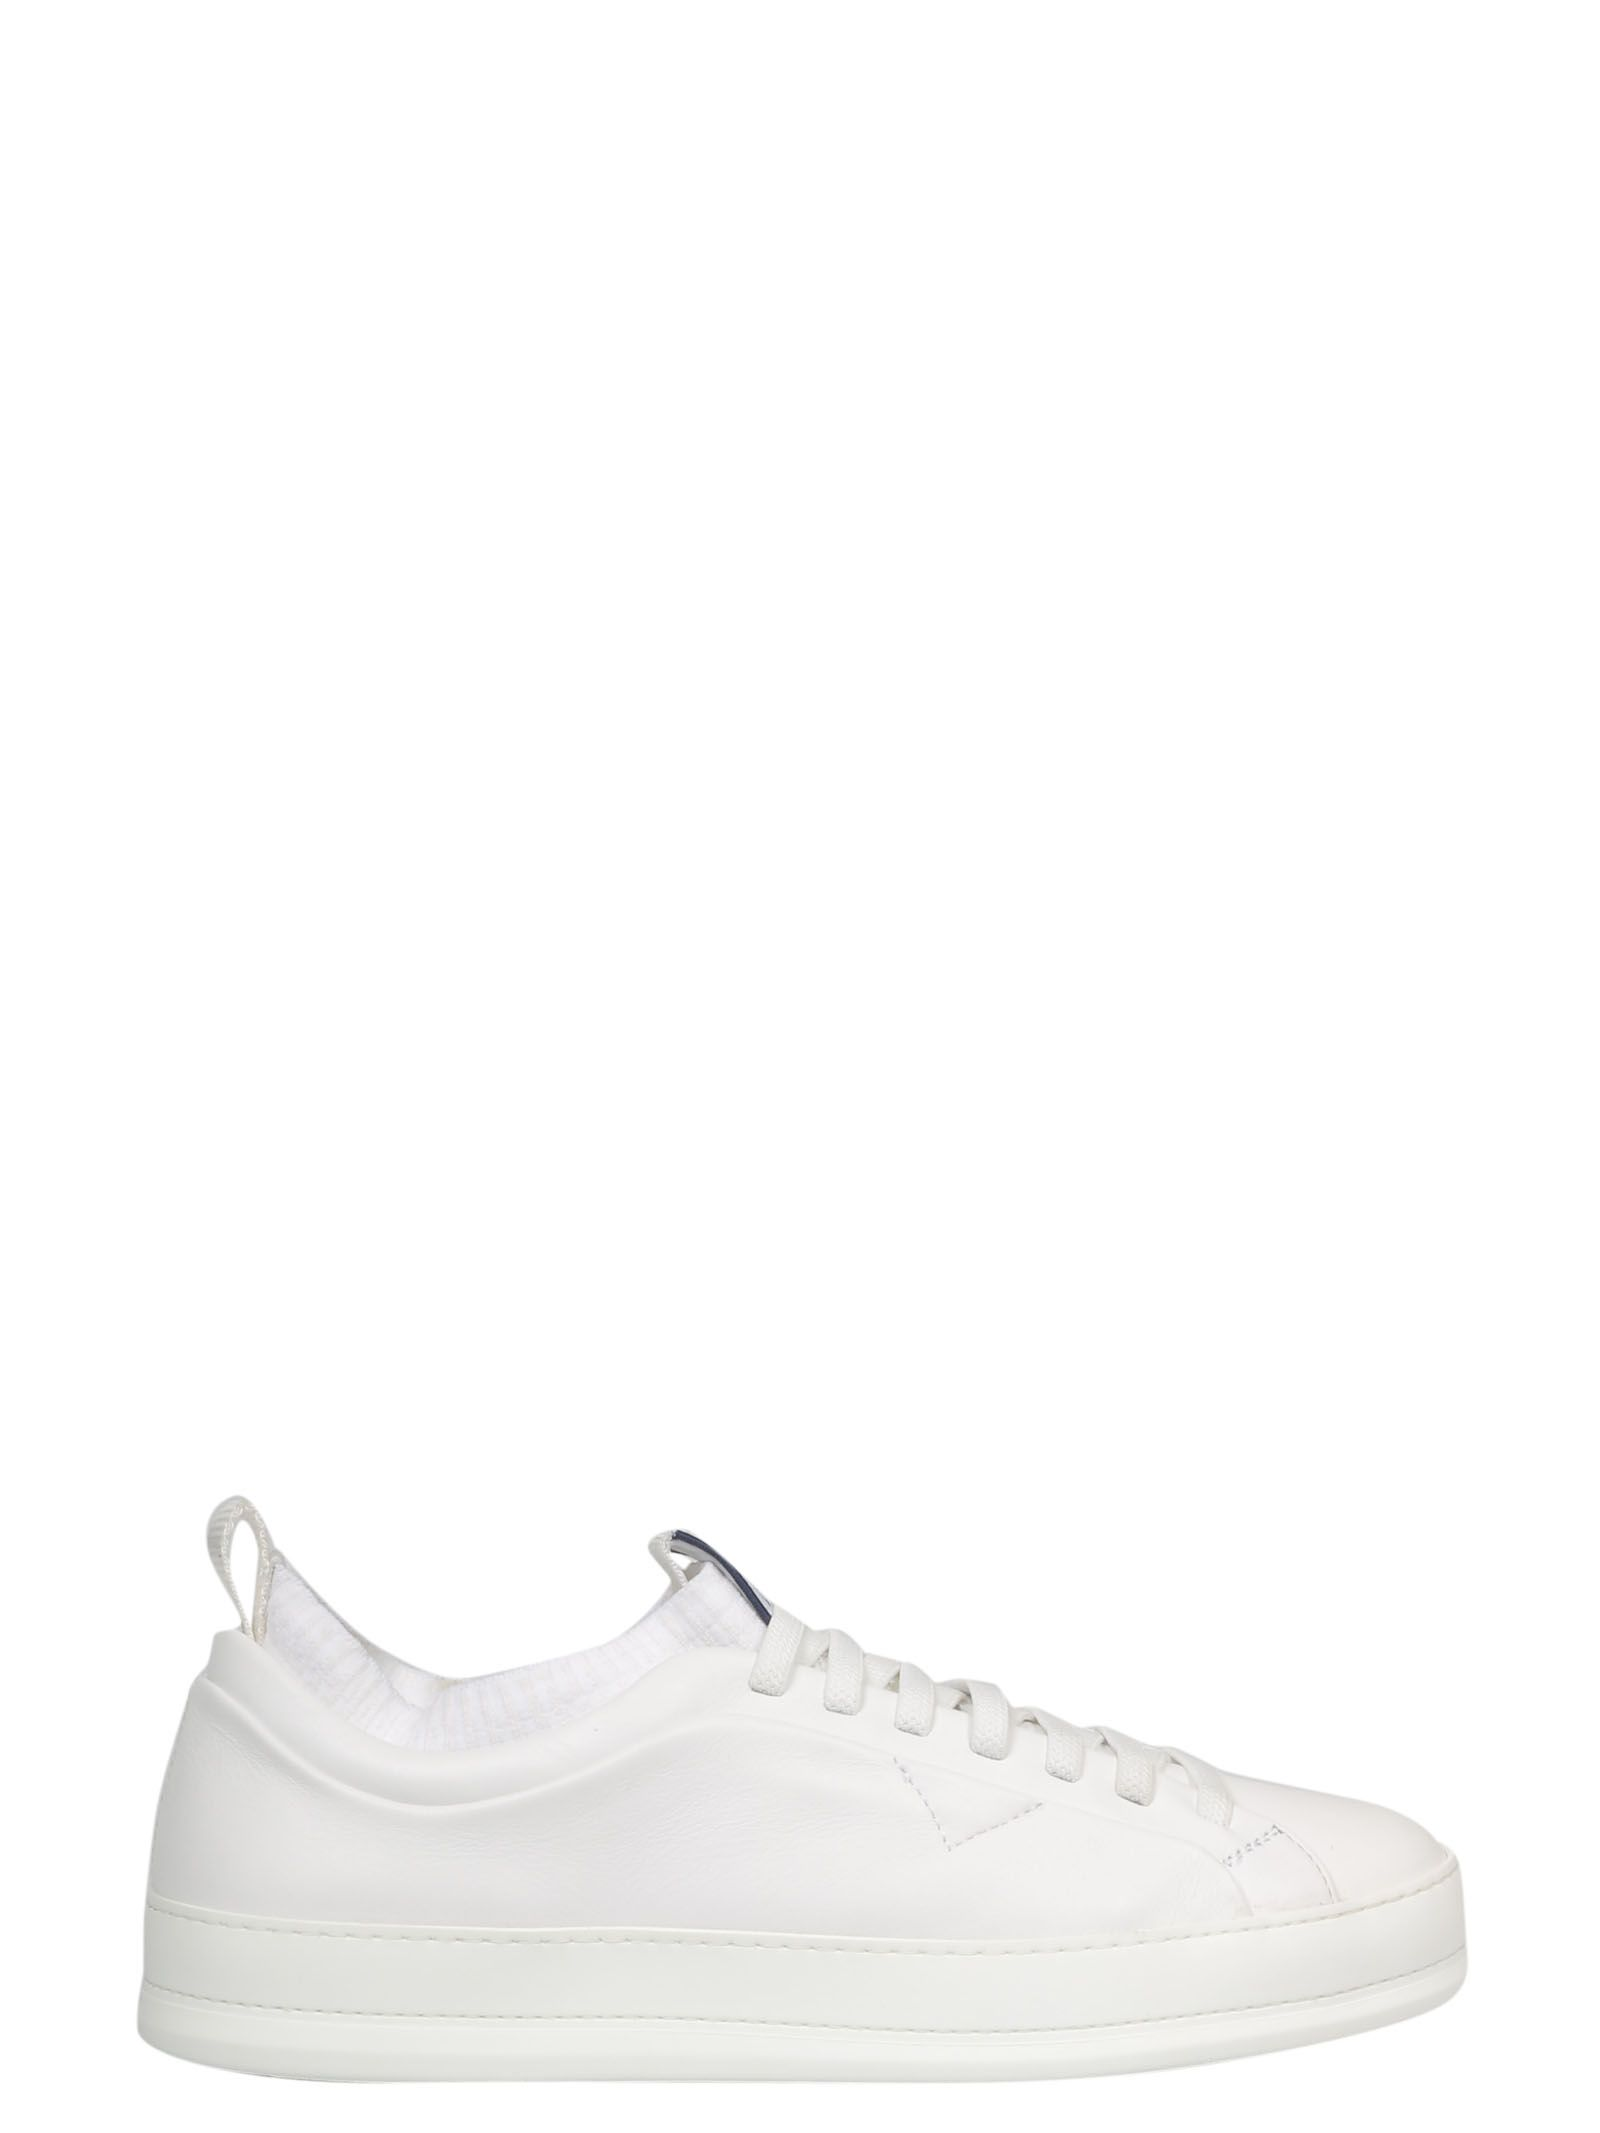 Z Zegna Classic Sock Style Sneakers